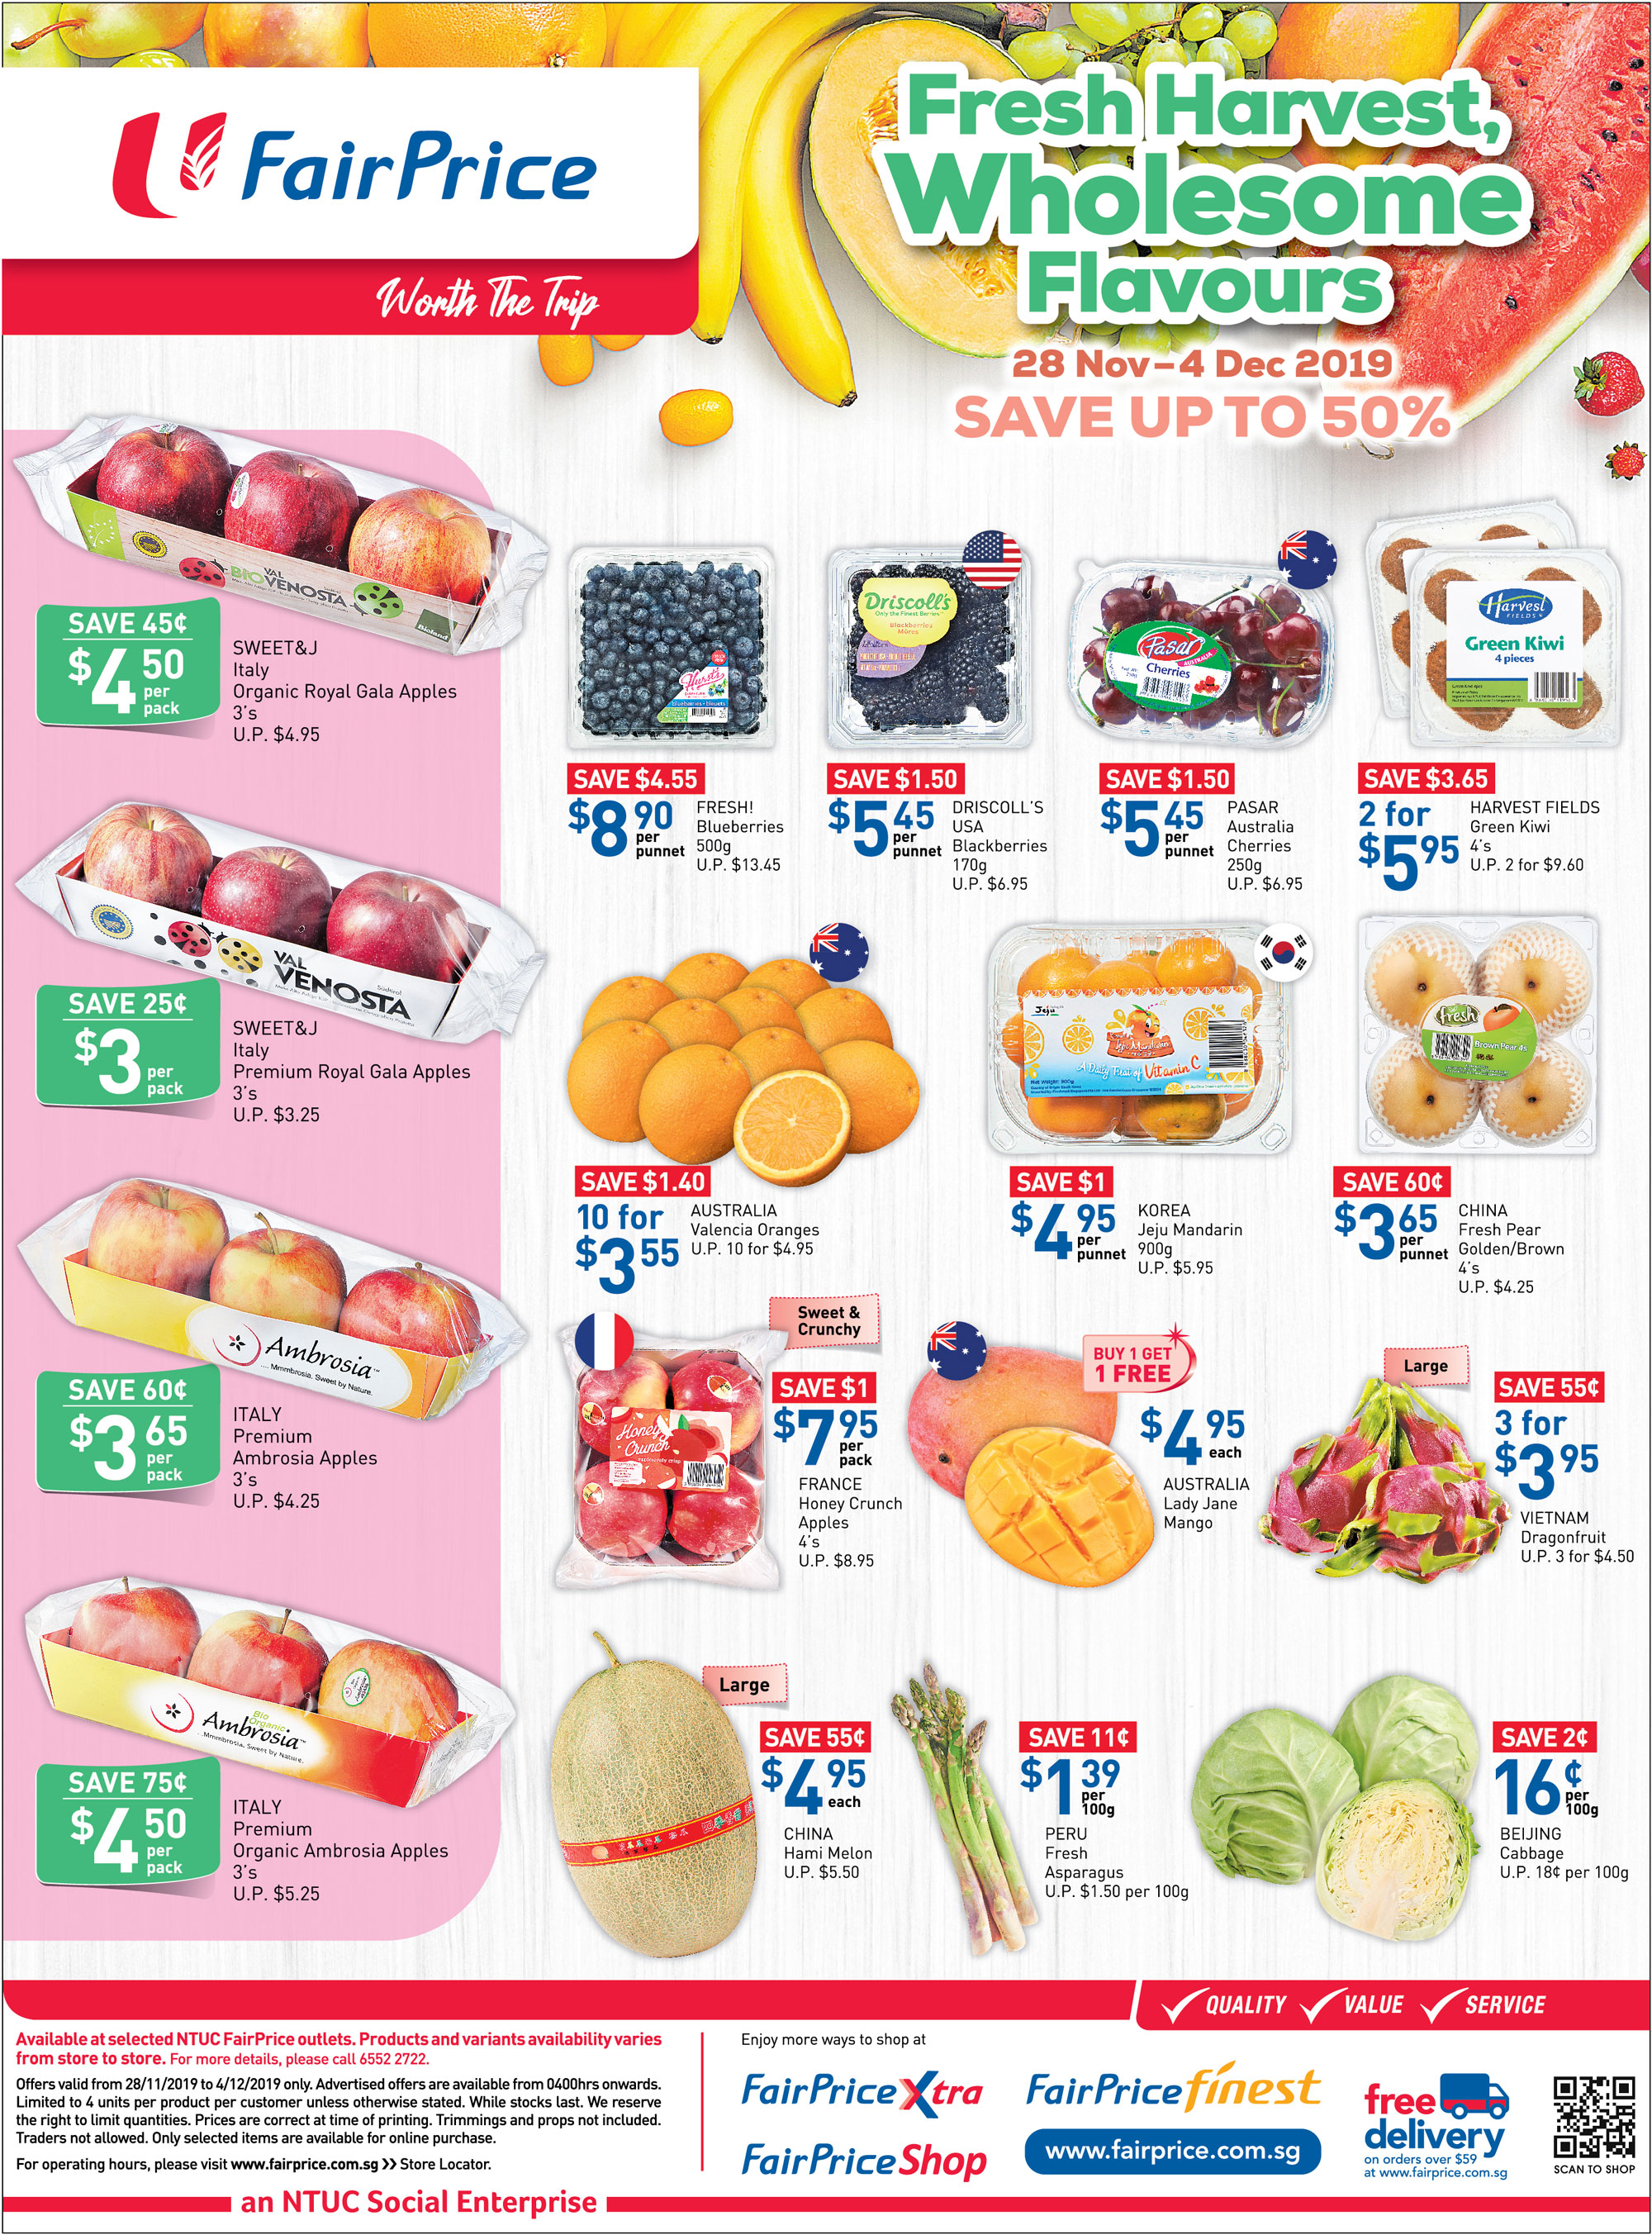 NTUC FairPrice Singapore Your Weekly Saver Promotions 28 Nov - 4 Dec 2019 | Why Not Deals 6 & Promotions